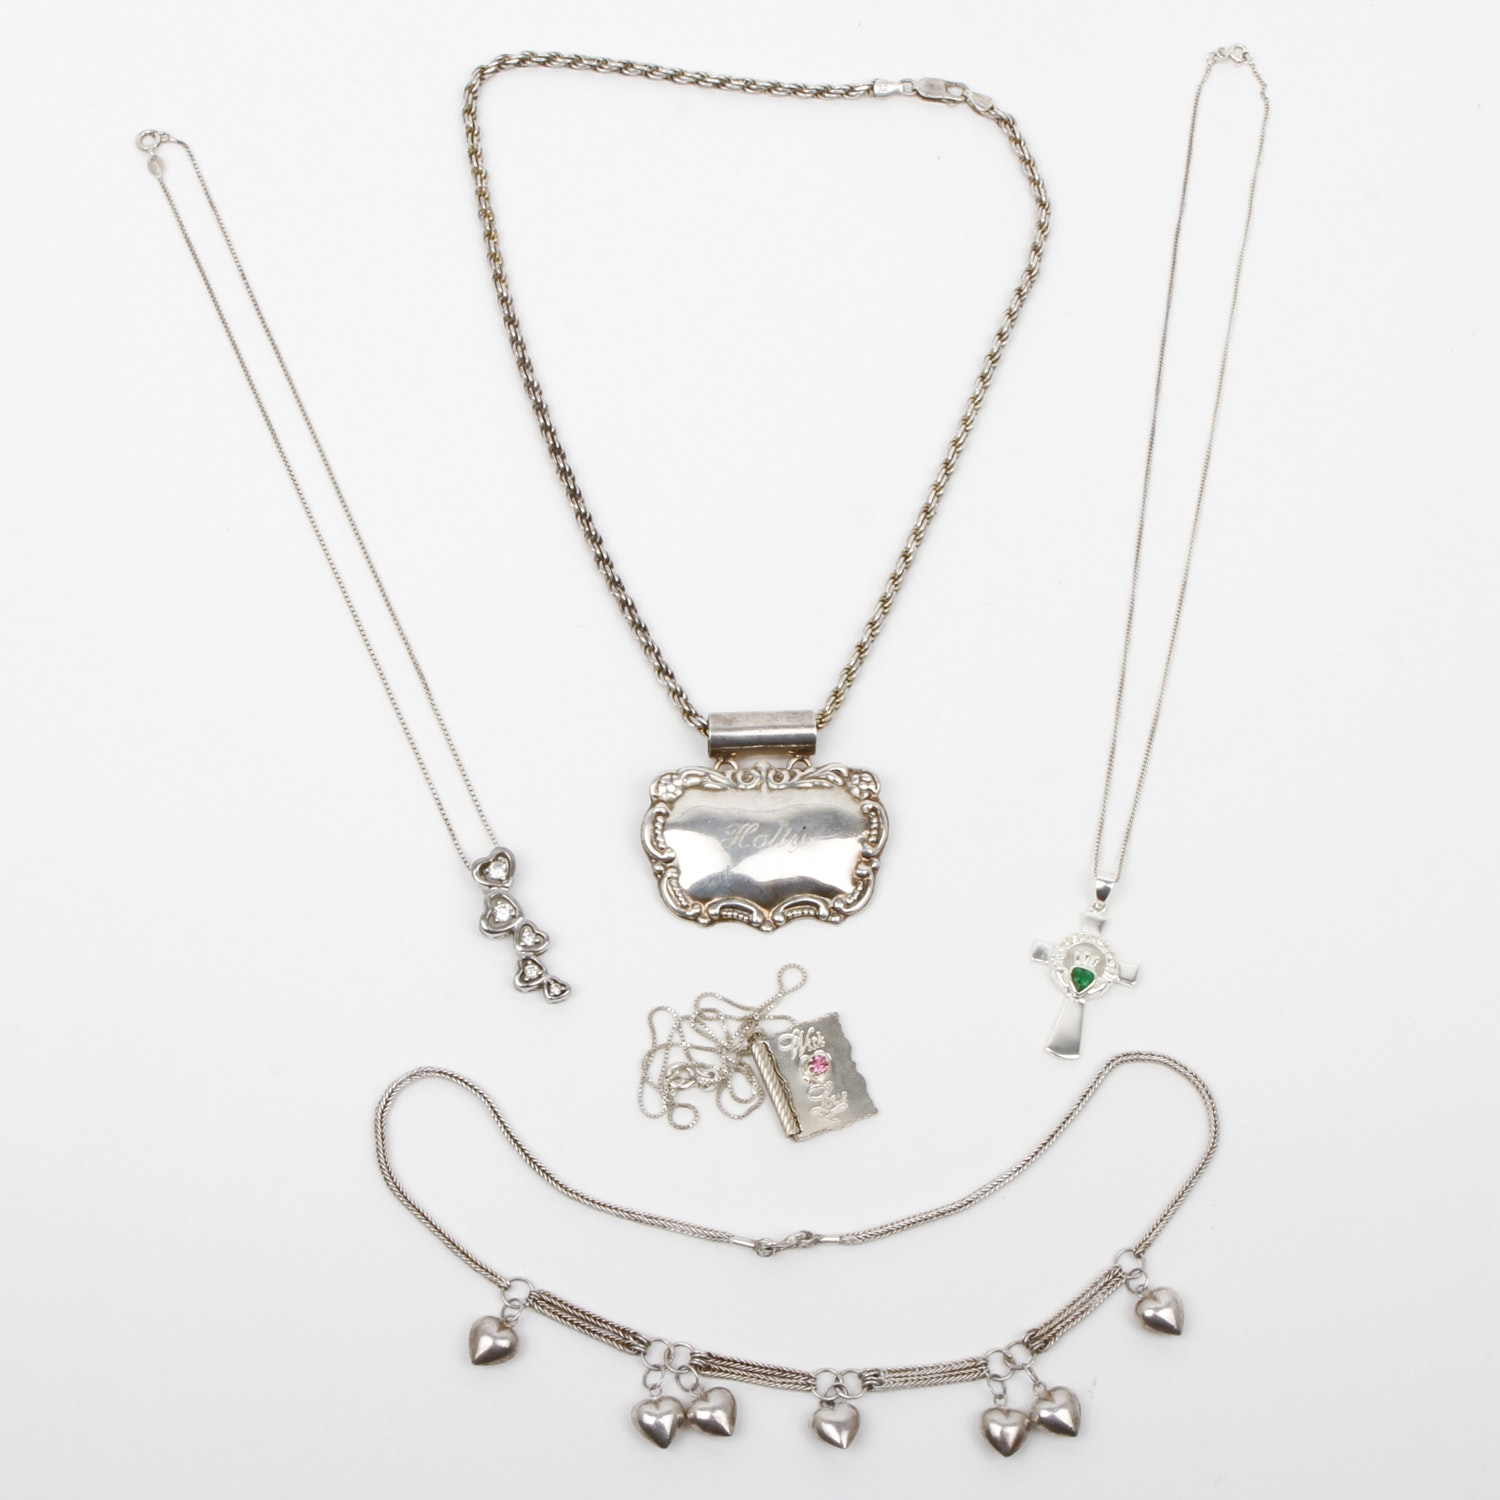 Assortment of Sterling Silver Pendant Necklaces